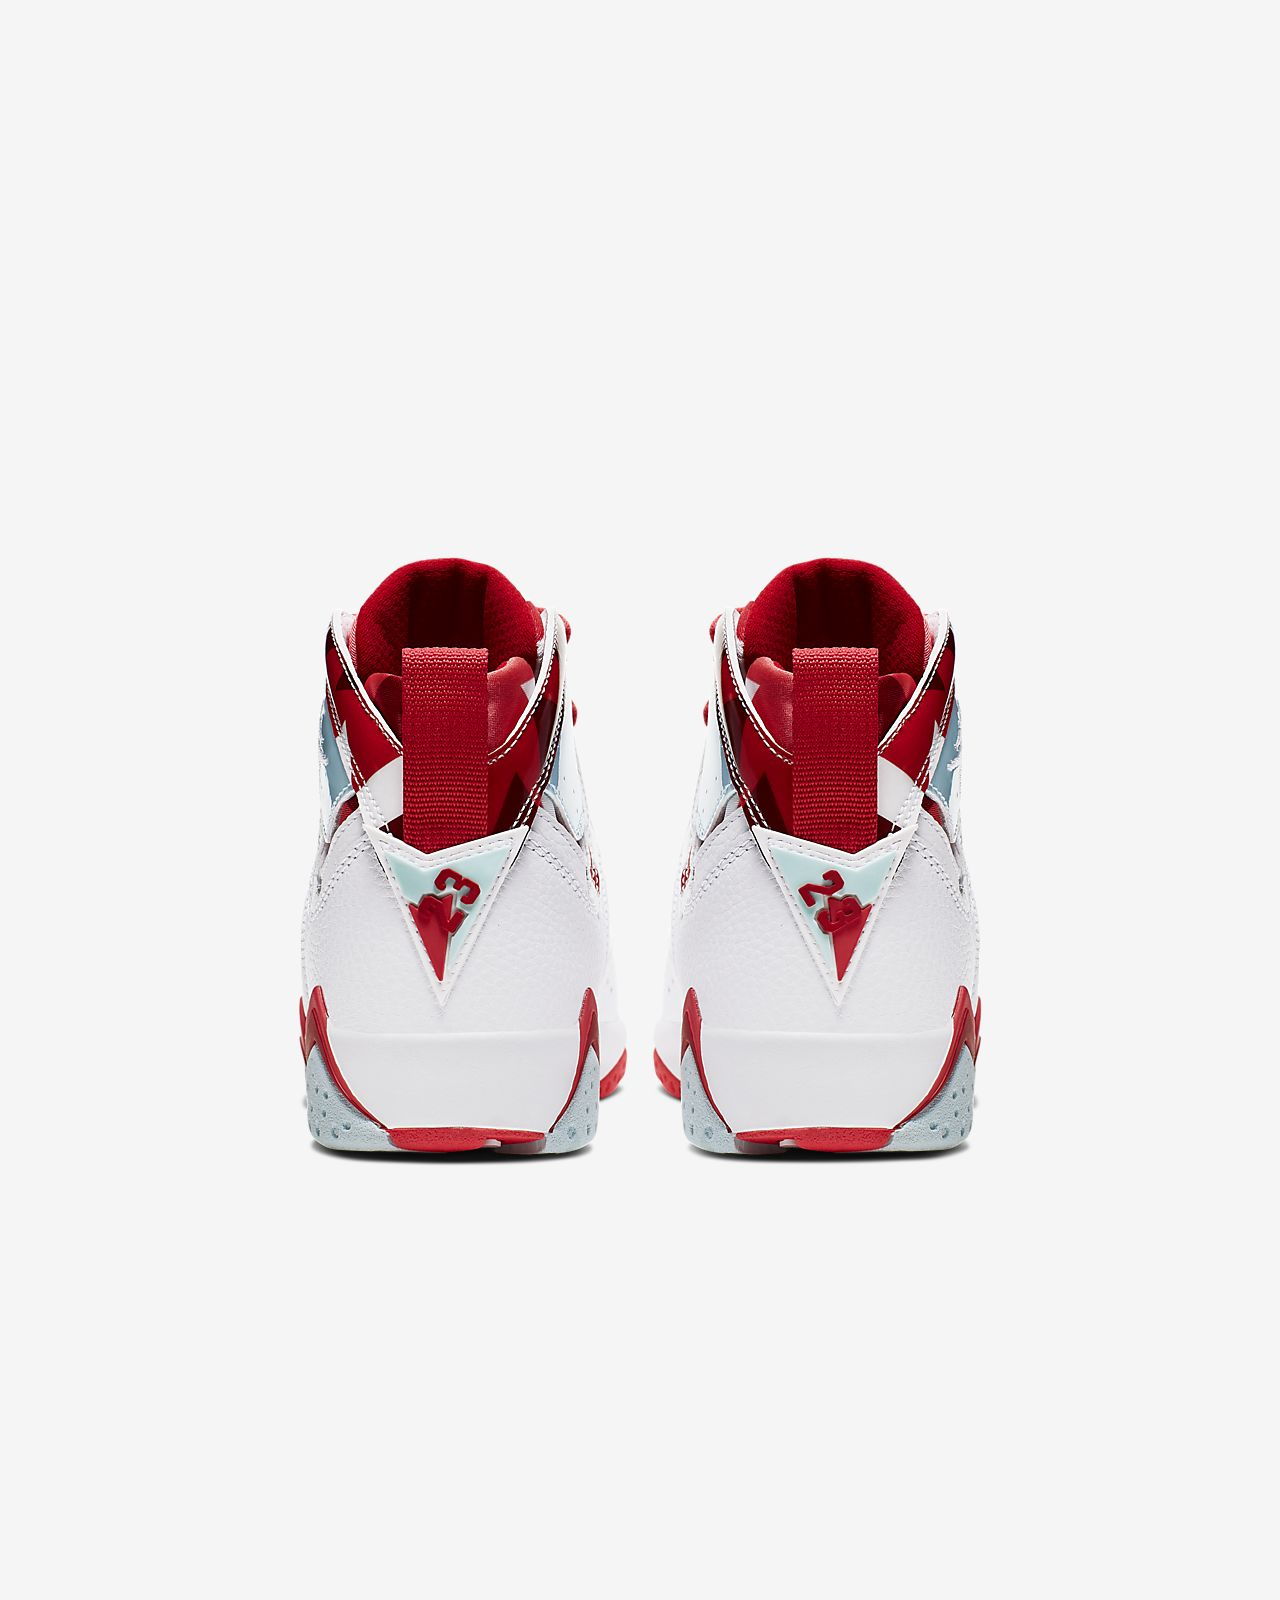 d5f1f3dfe44 Air Jordan 7 Retro (3.5y-9.5y) Big Kids' Shoe. Nike.com